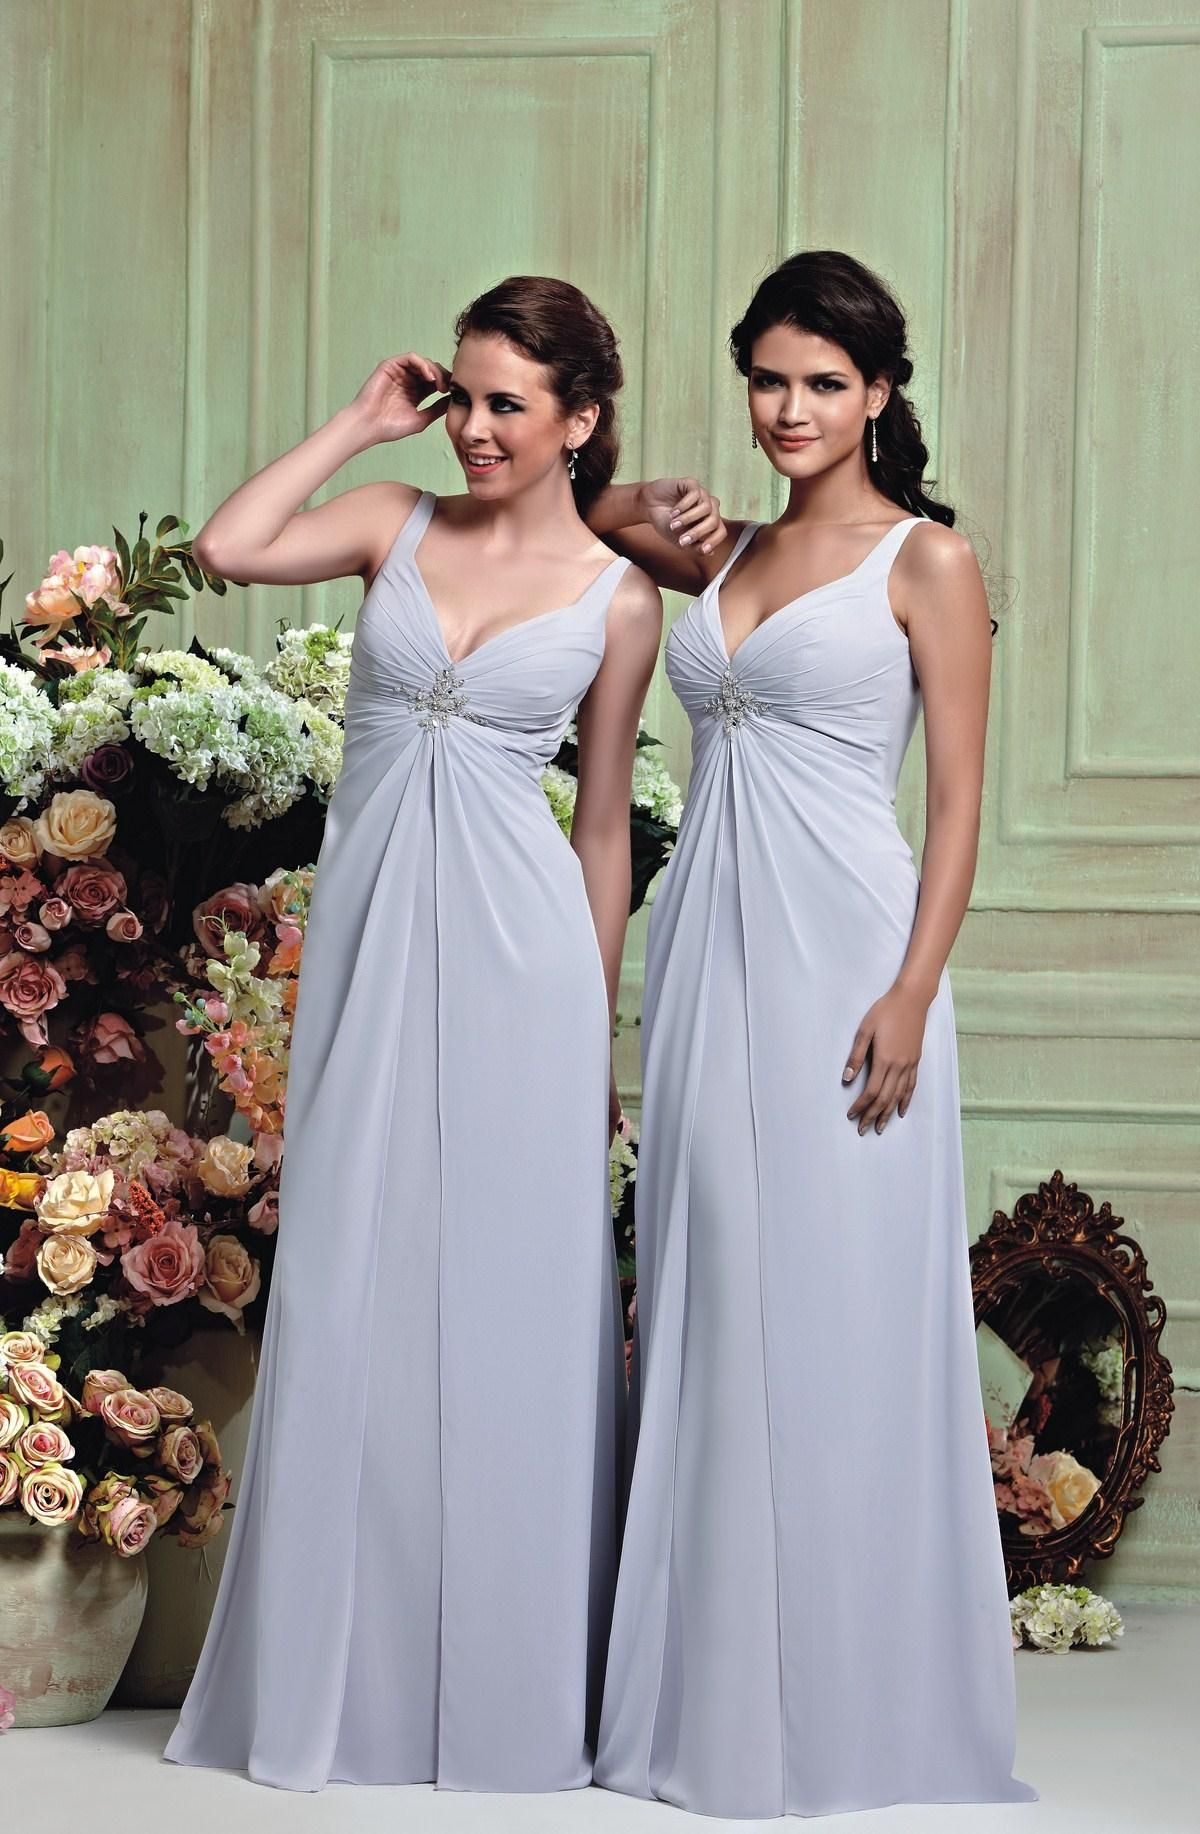 Veromia bridesmaid vrb71209 hyacinth new season and in store at veromia bridesmaid vrb71209 hyacinth new season and in store at weddingsangelfaceme ombrellifo Gallery